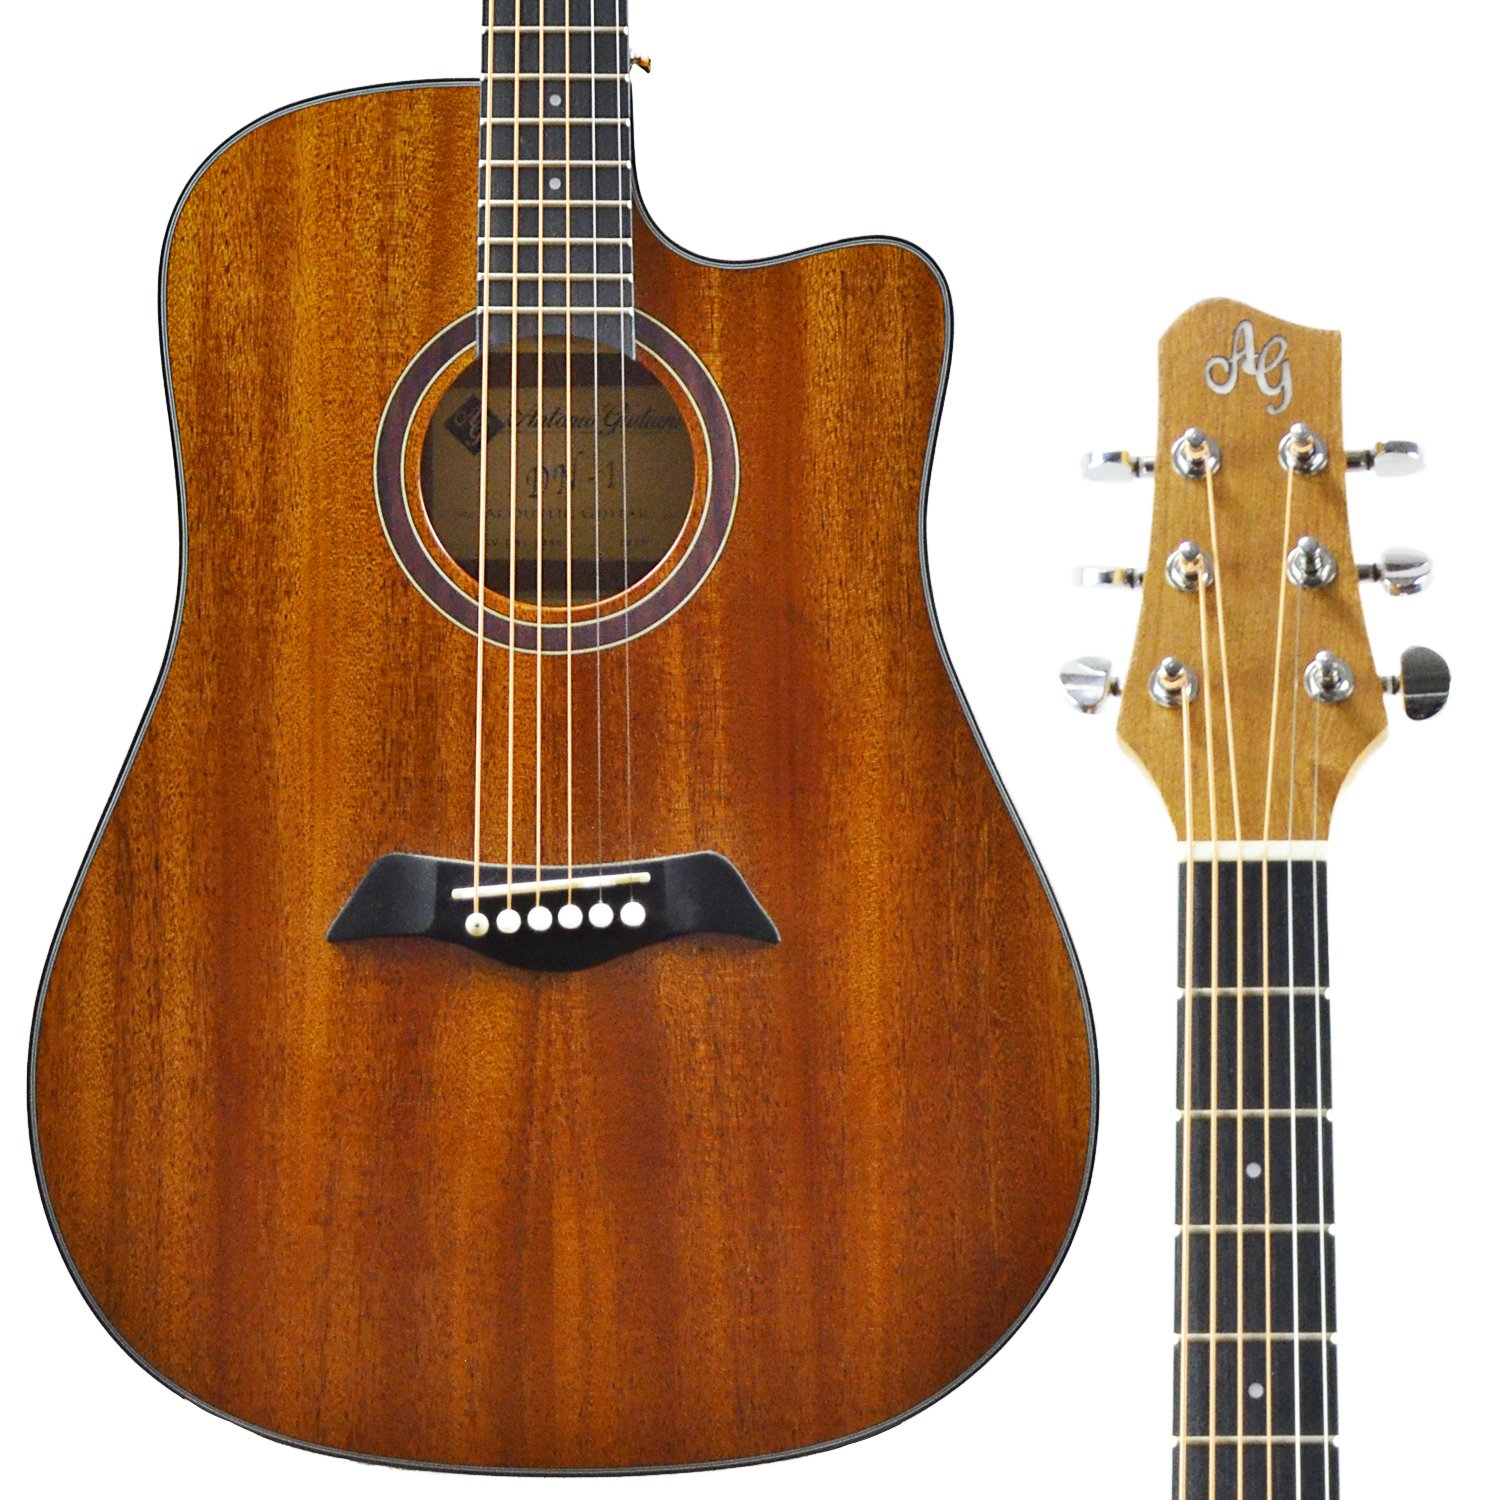 antonio giuliani dn 1 steel string dreadnought cutout acoustic guitar for sale online kennedy. Black Bedroom Furniture Sets. Home Design Ideas